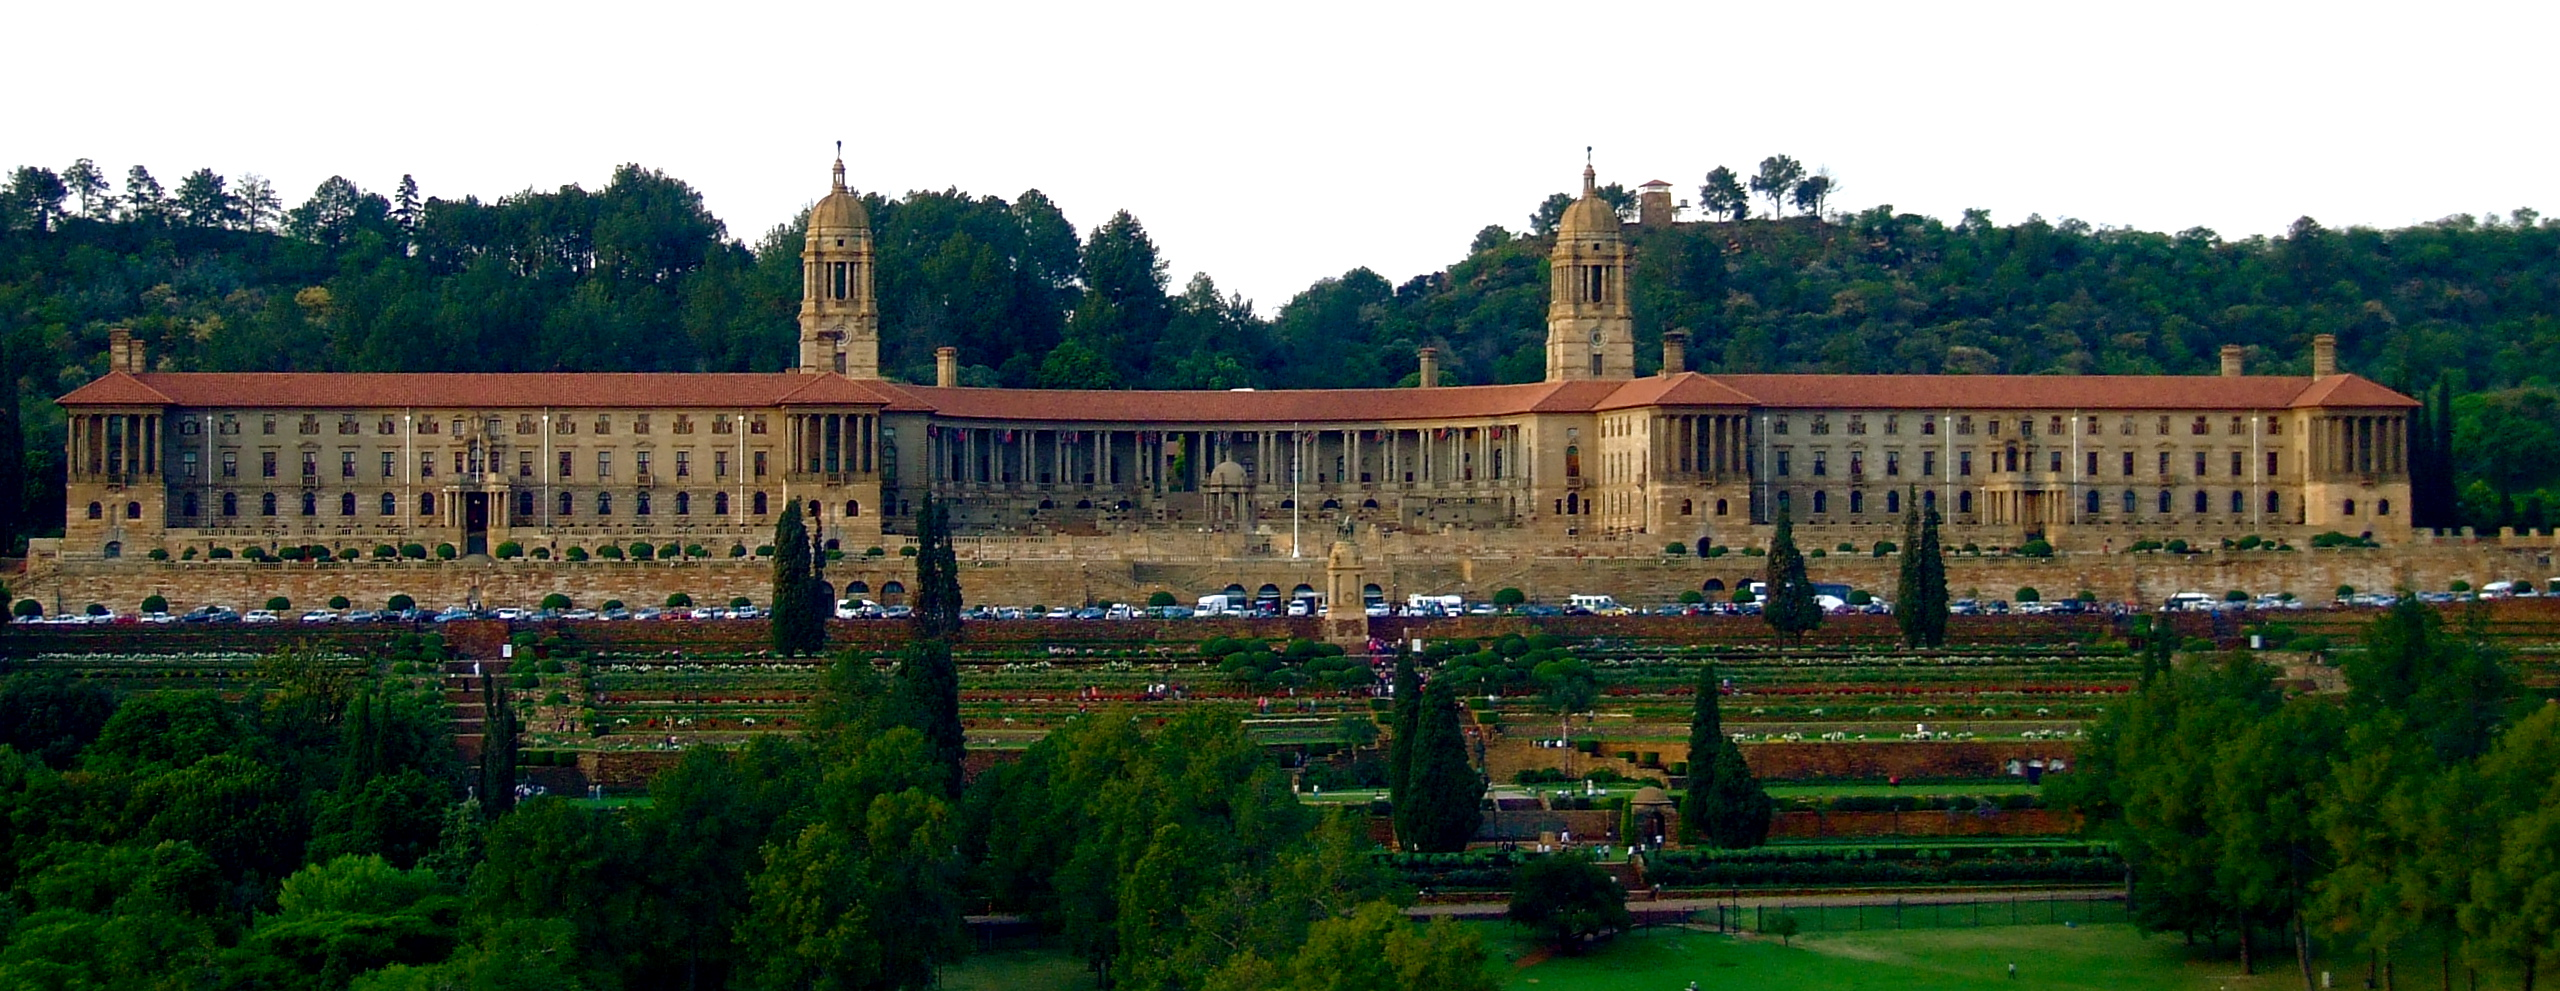 Pretoria South Africa  city photos gallery : pretoria union buildings seat of south african government